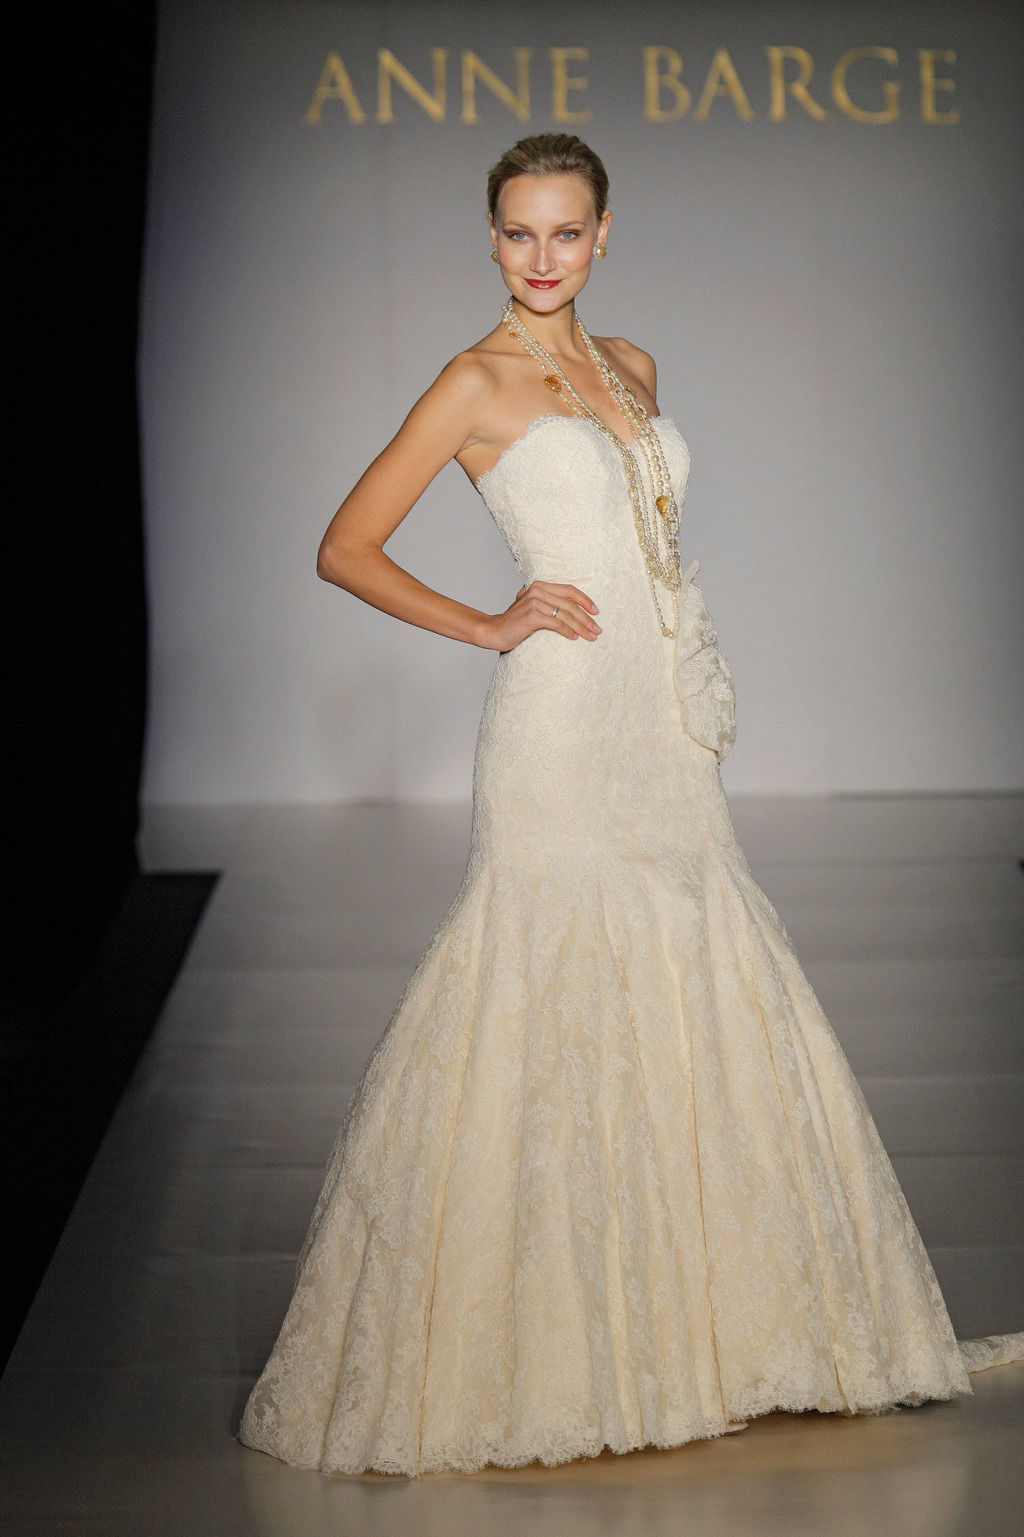 Fall-2011-wedding-dresses-anne-barge-windsor-sweetheart-neckline-lace-bridal-gown-statement-wedding-jewelry.full